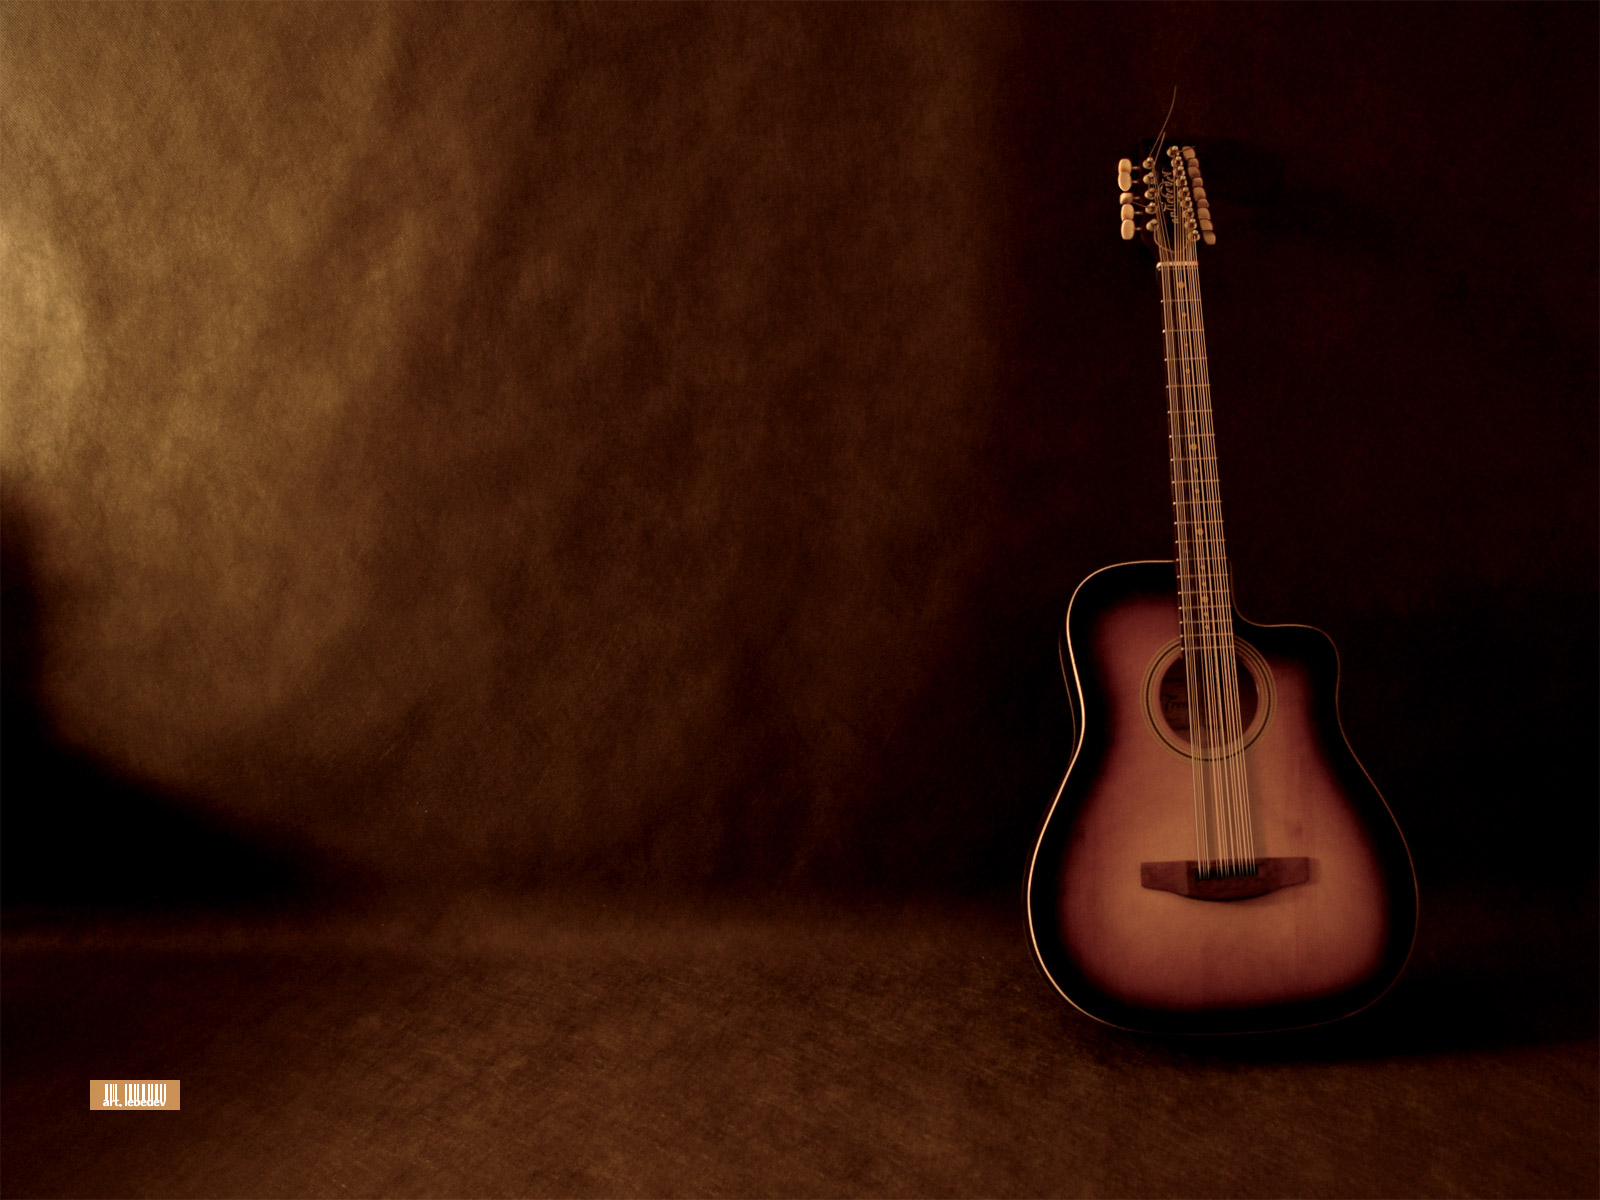 free wallpicz guitar desktop wallpaper hd